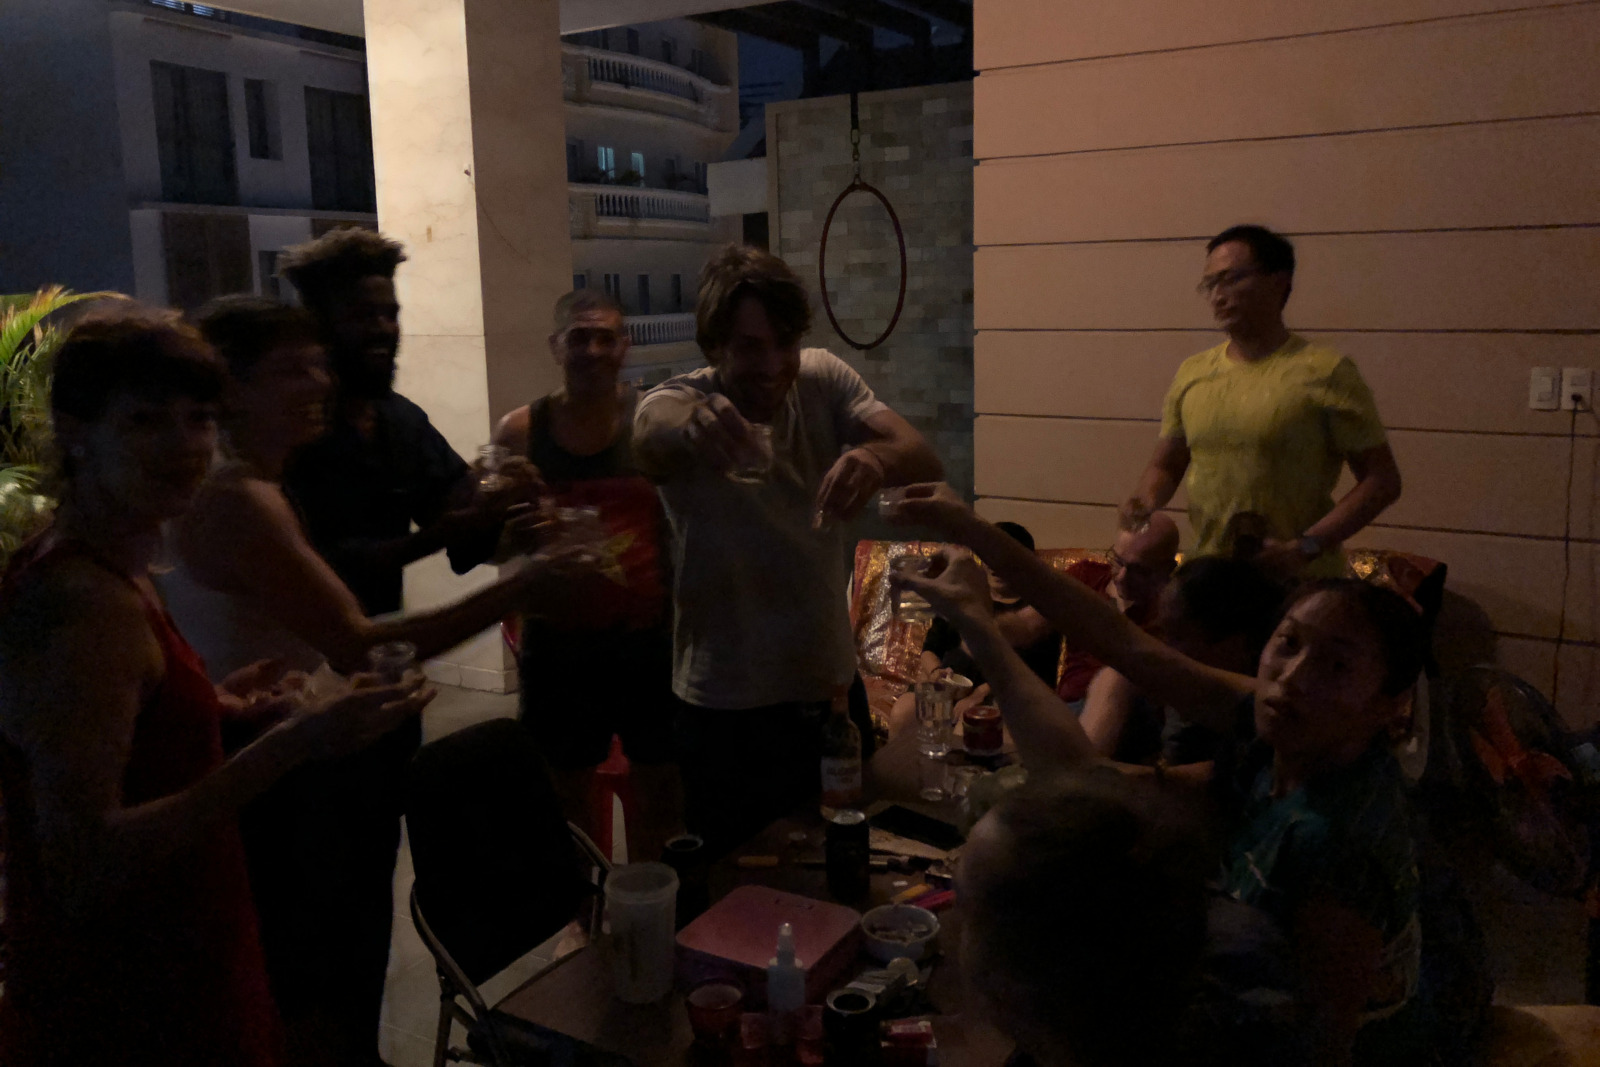 Say Cheers Different Country Language Group Toast Saigon